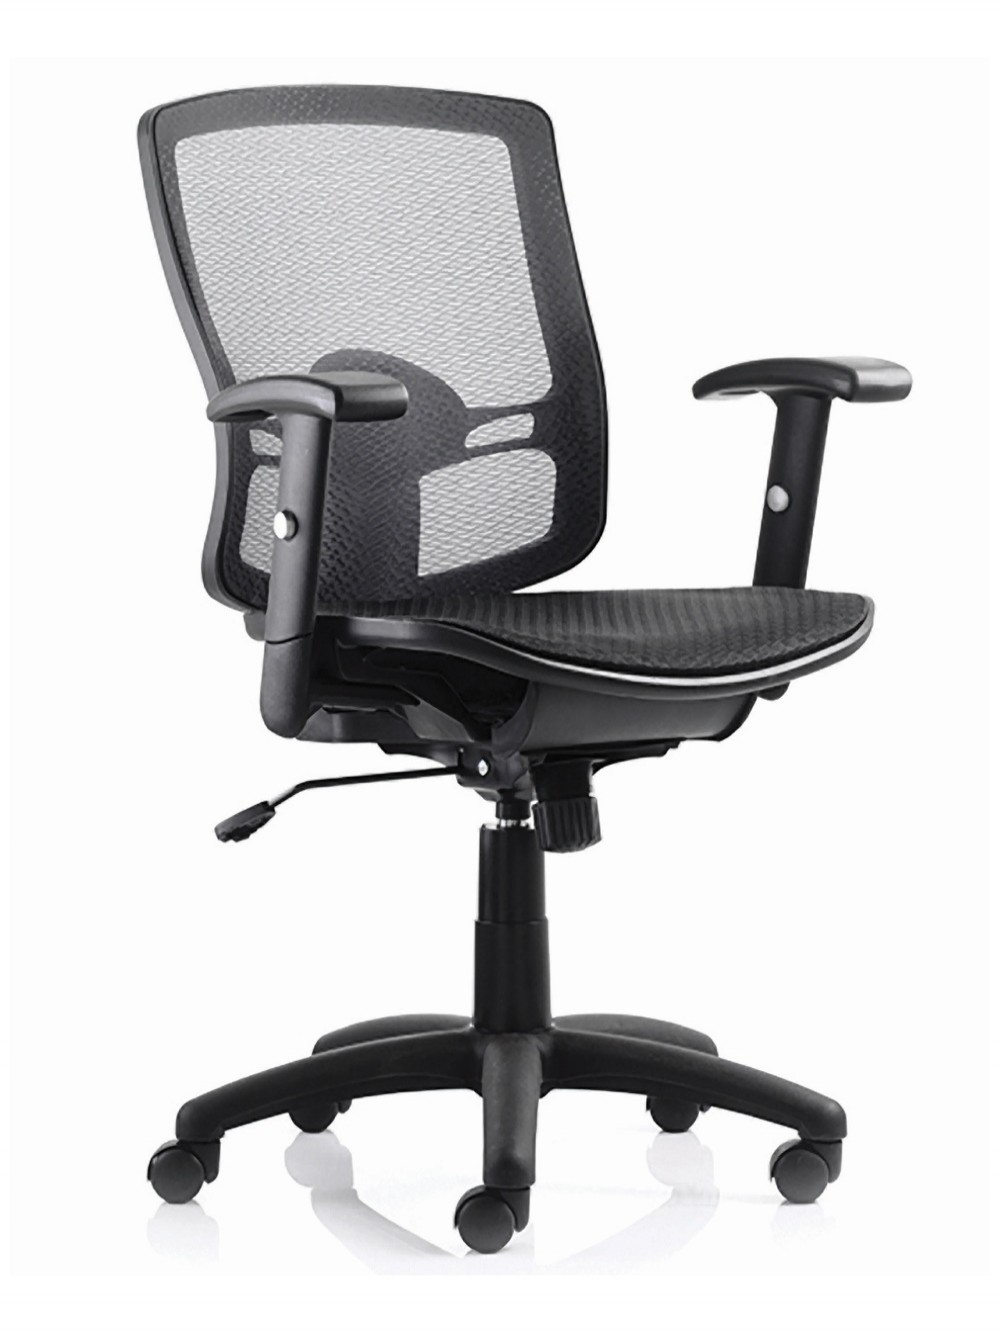 Dynamic Palma Mesh Back Office Chair 121 Office Furniture